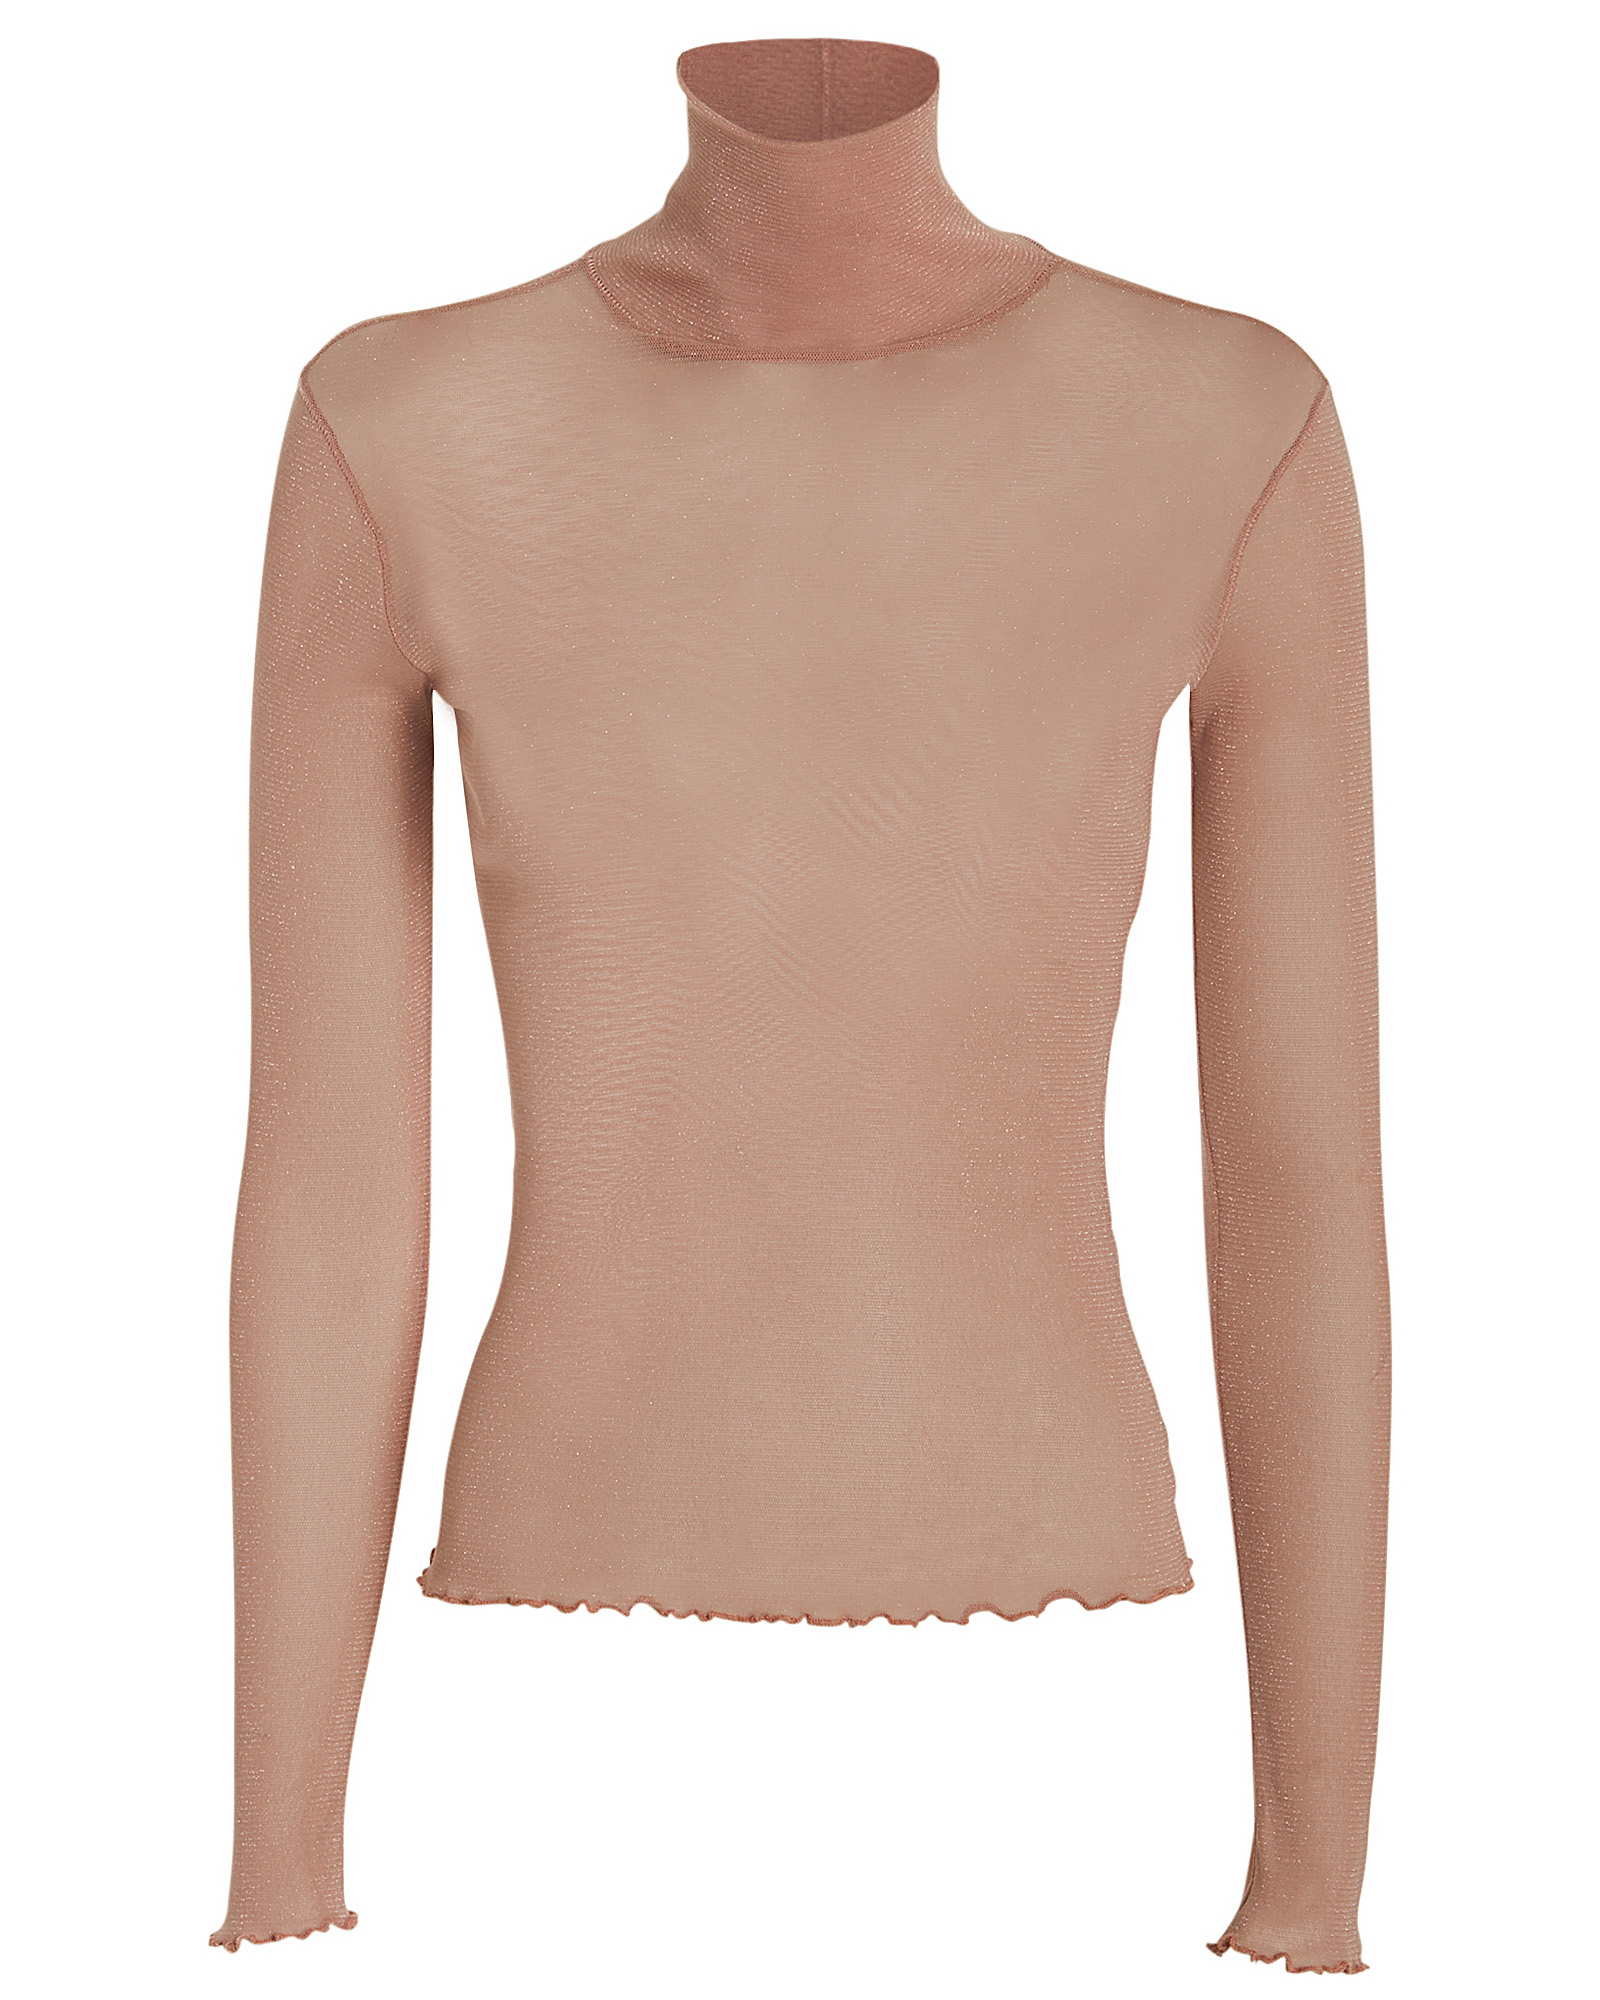 Shimmer Tulle Turtleneck Top by Jonathan Simkhai